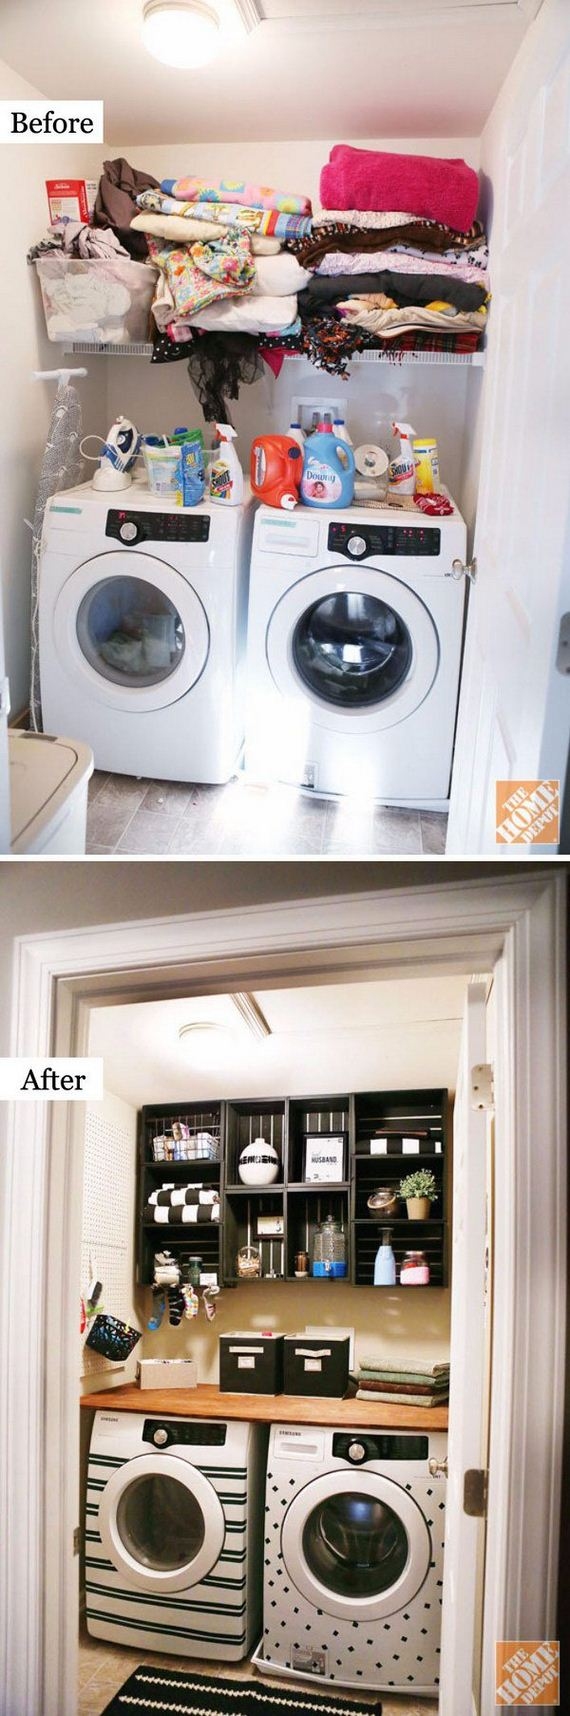 01-before-laundry-room